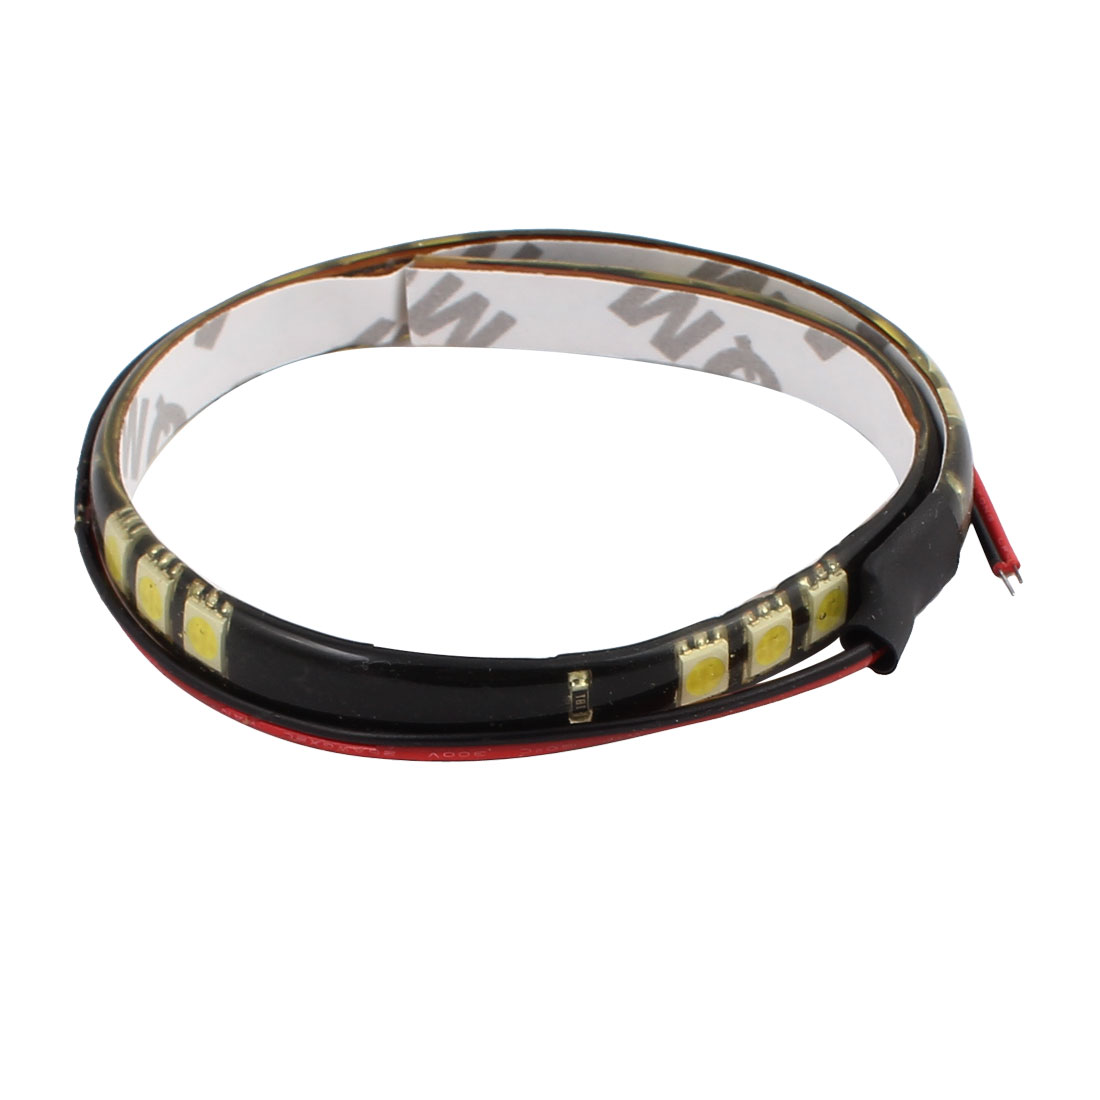 30CM 12V RGB 50mm x 50mm Yellow LED Strip Light For Motorcycle or Car with 15 lights